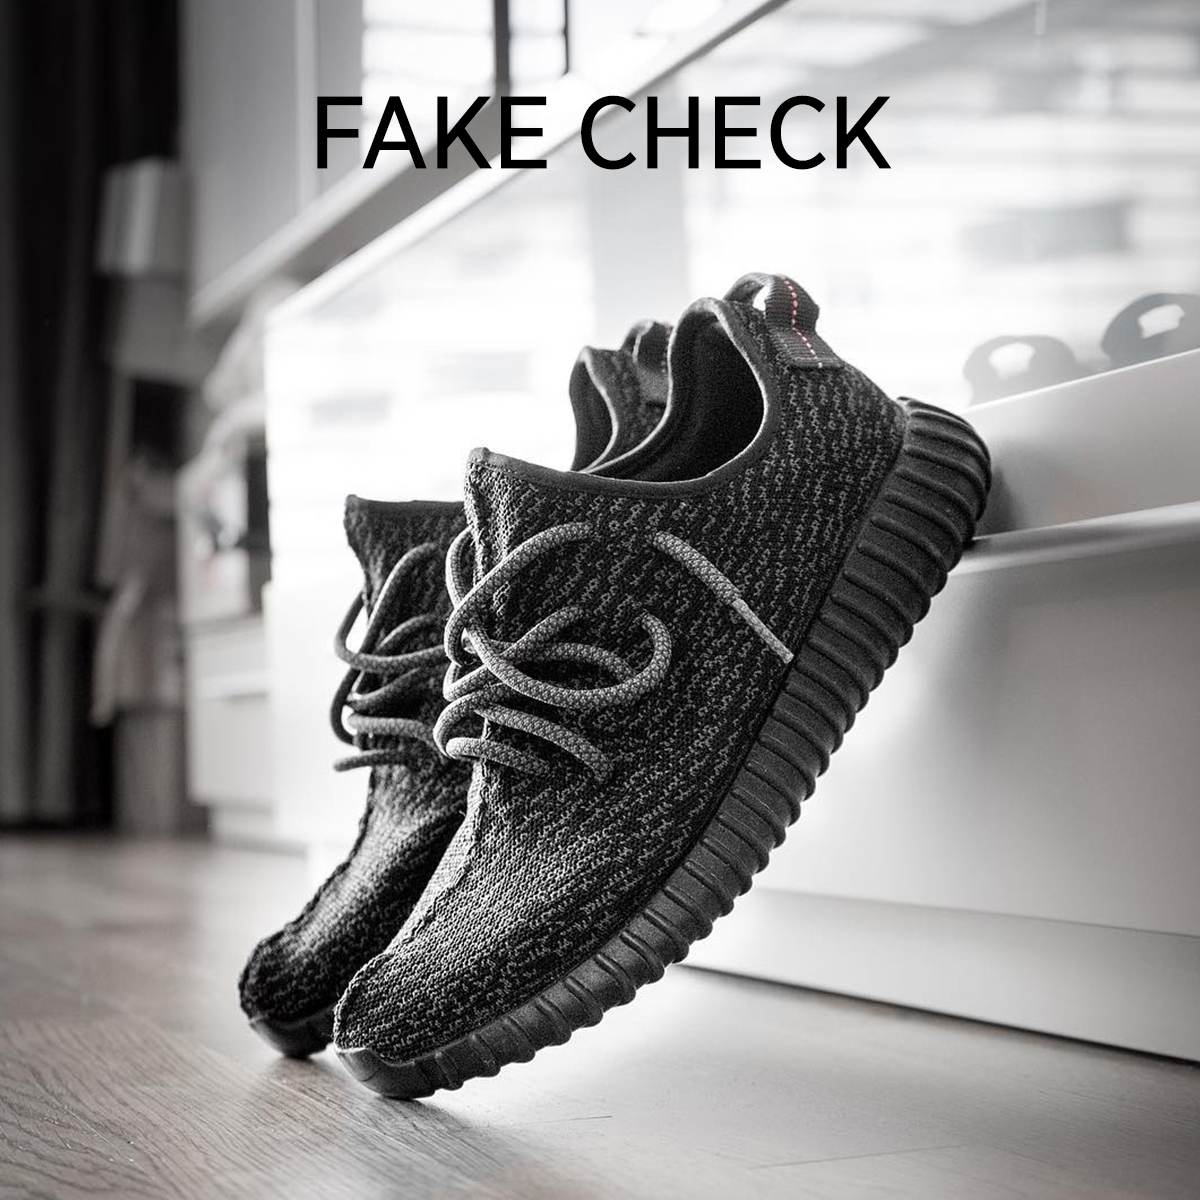 527bd570c0f94 adidas Yeezy Boost 350  Pirate Black  Fake Check. Klekt shows you how to  spot ...